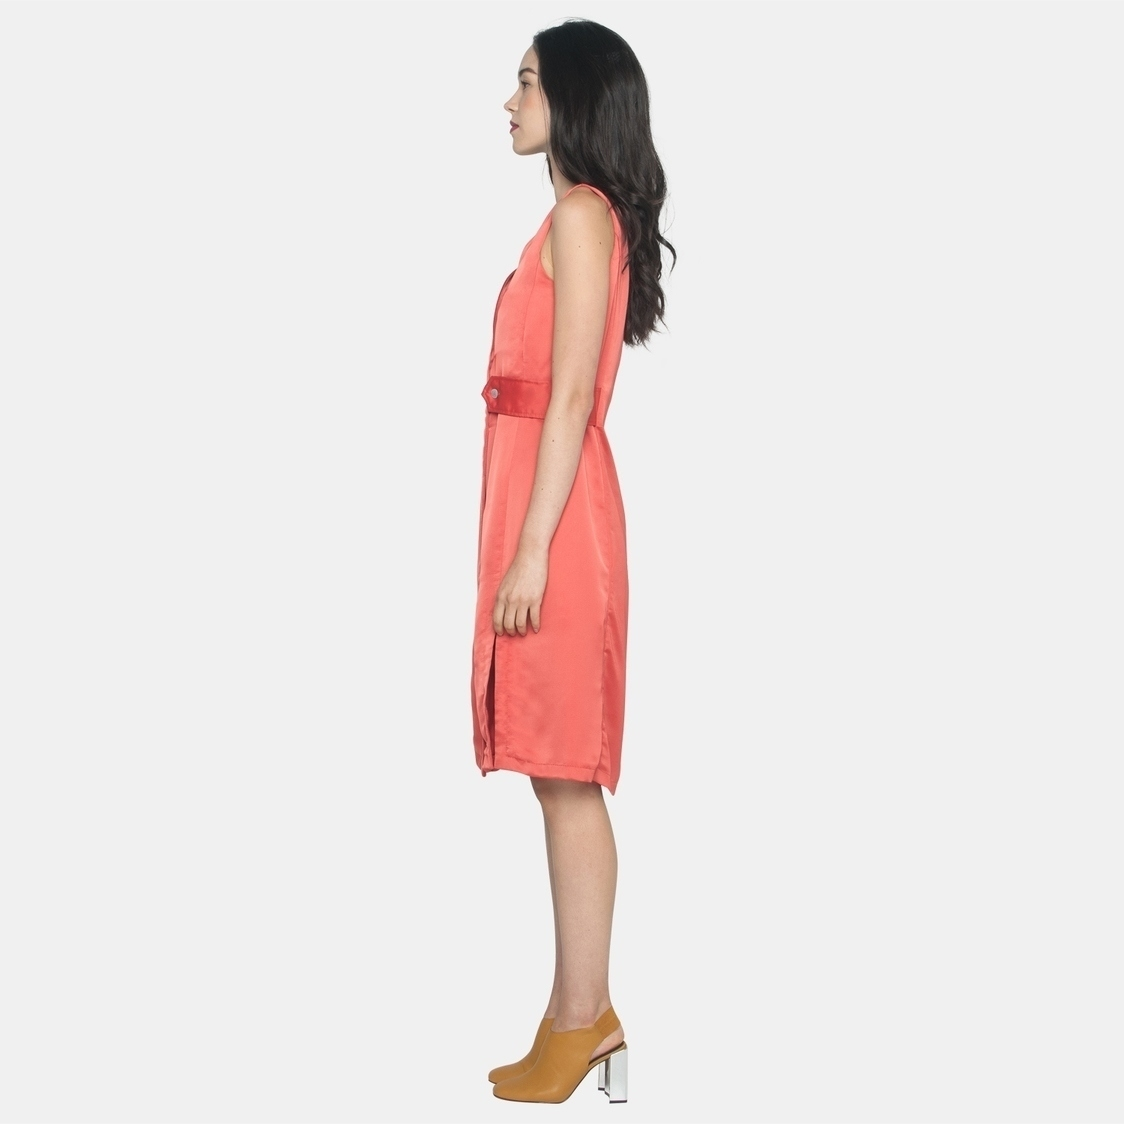 Ellysage Belted Shirt Dress with Slits in Orange